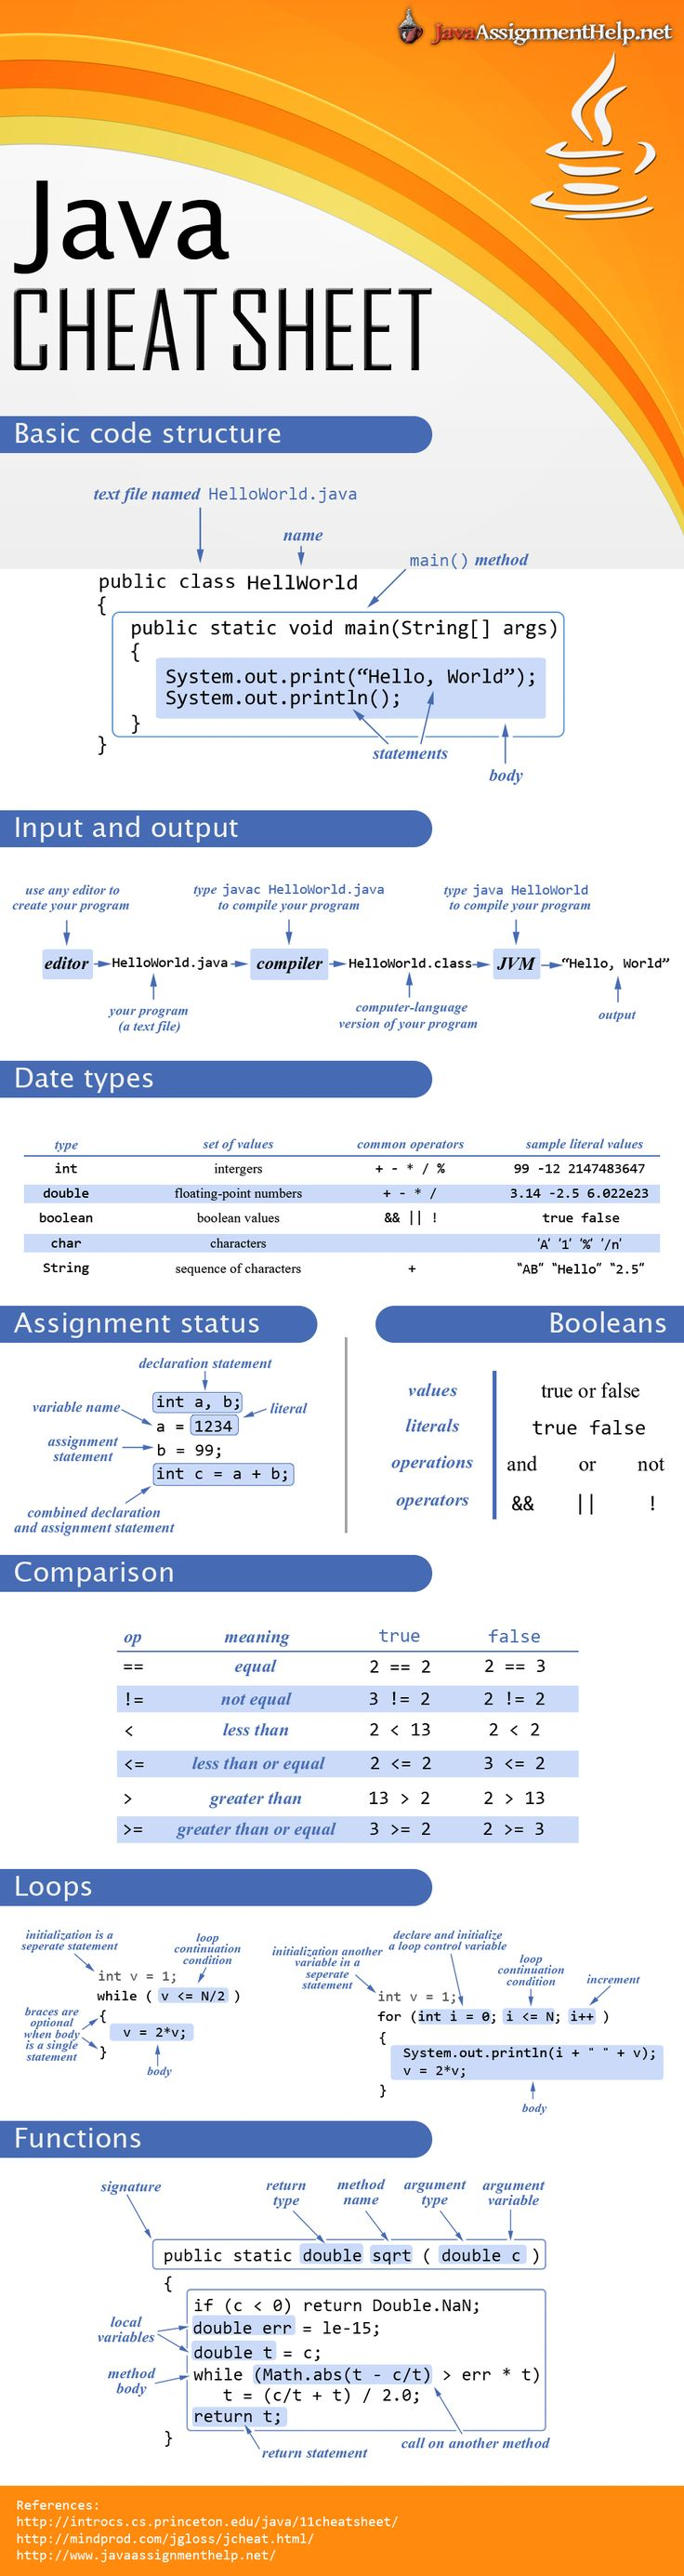 Java cheat sheet supplies you with a list of the most important Java functions and explains Java syntax. For professional Java help don't hesitate to turn to http://www.javaassignmenthelp.net/